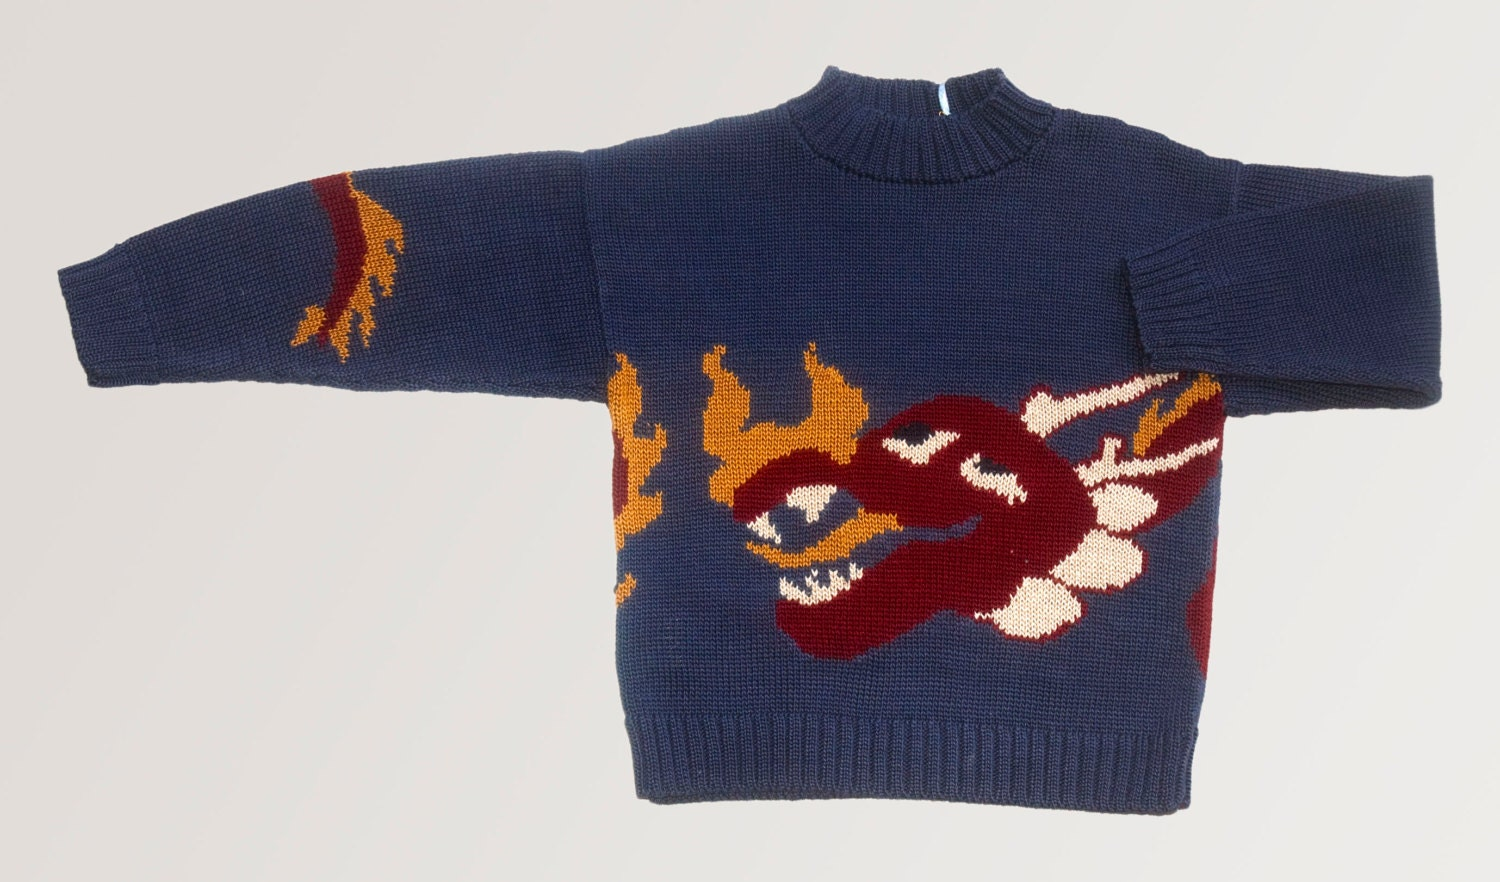 Dragon sweater blue knit sweater toddler boys Blue and red